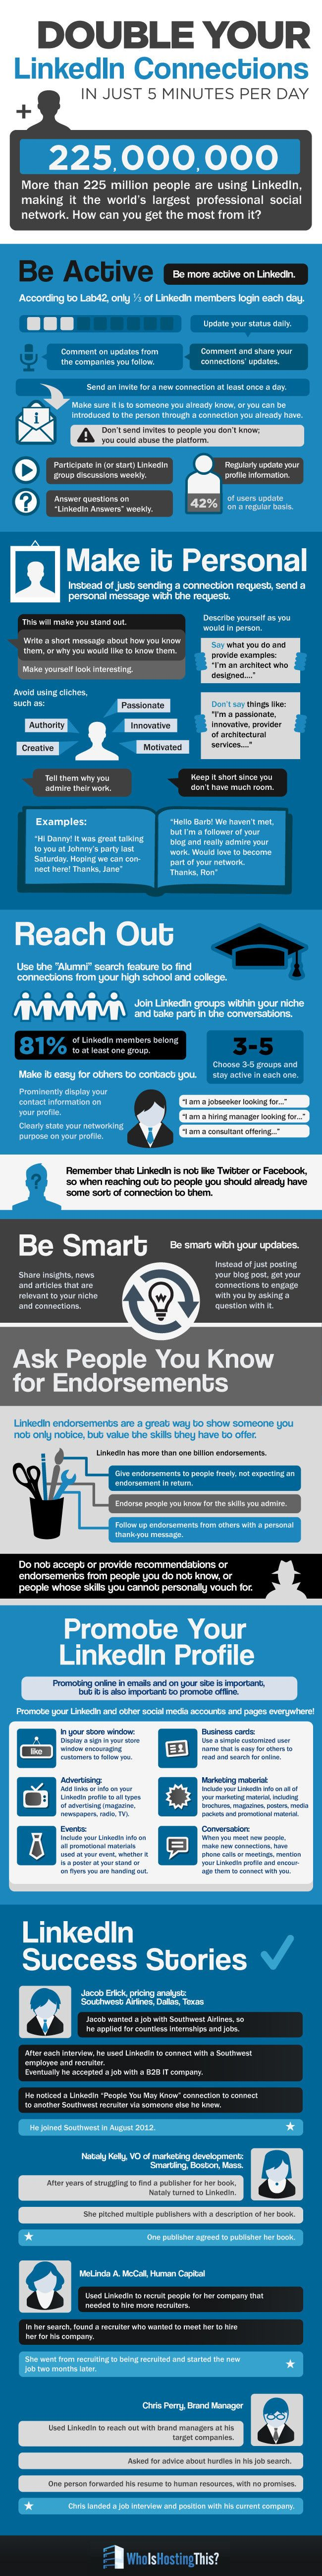 LinkedIn Infographic for Friday Fun